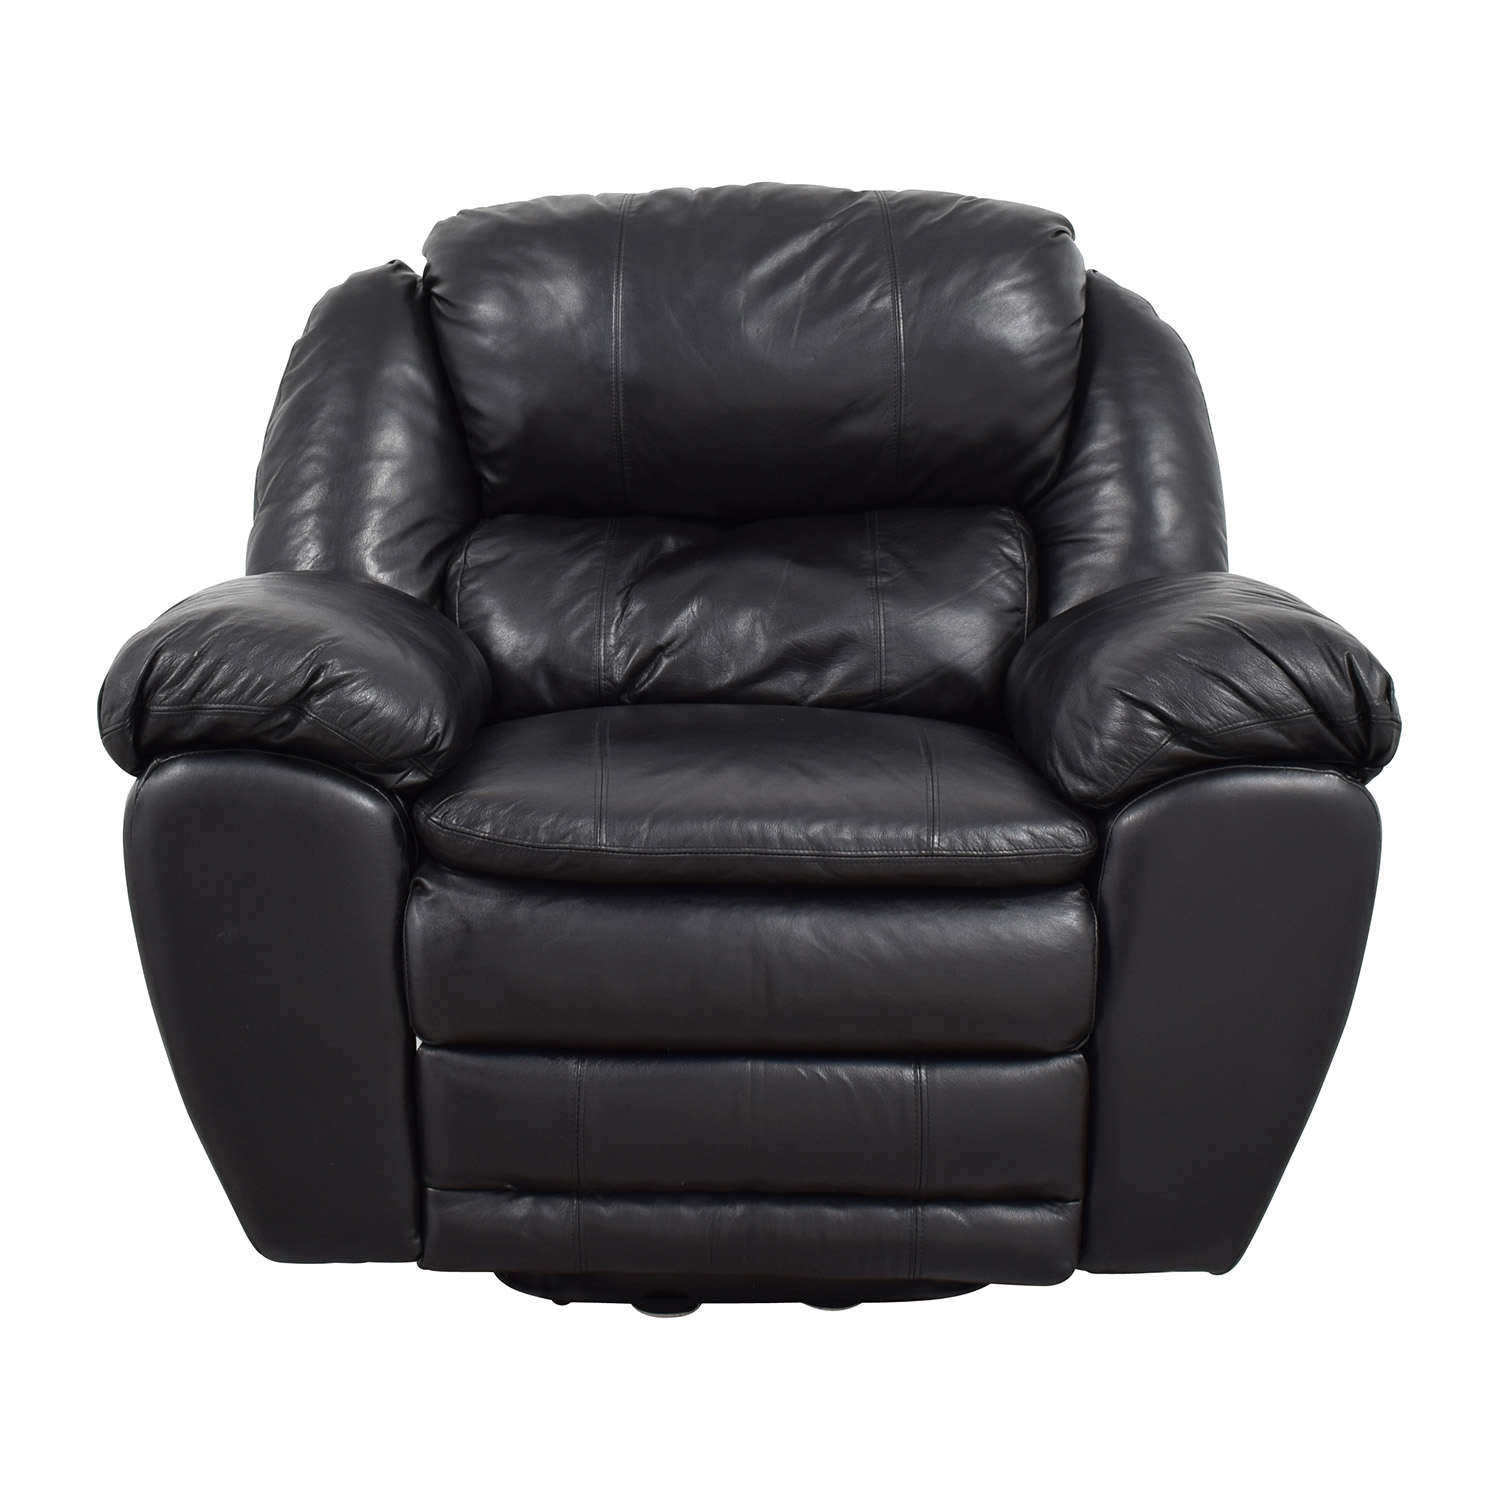 Berkline Black Leather Rocking Recliner / Recliners